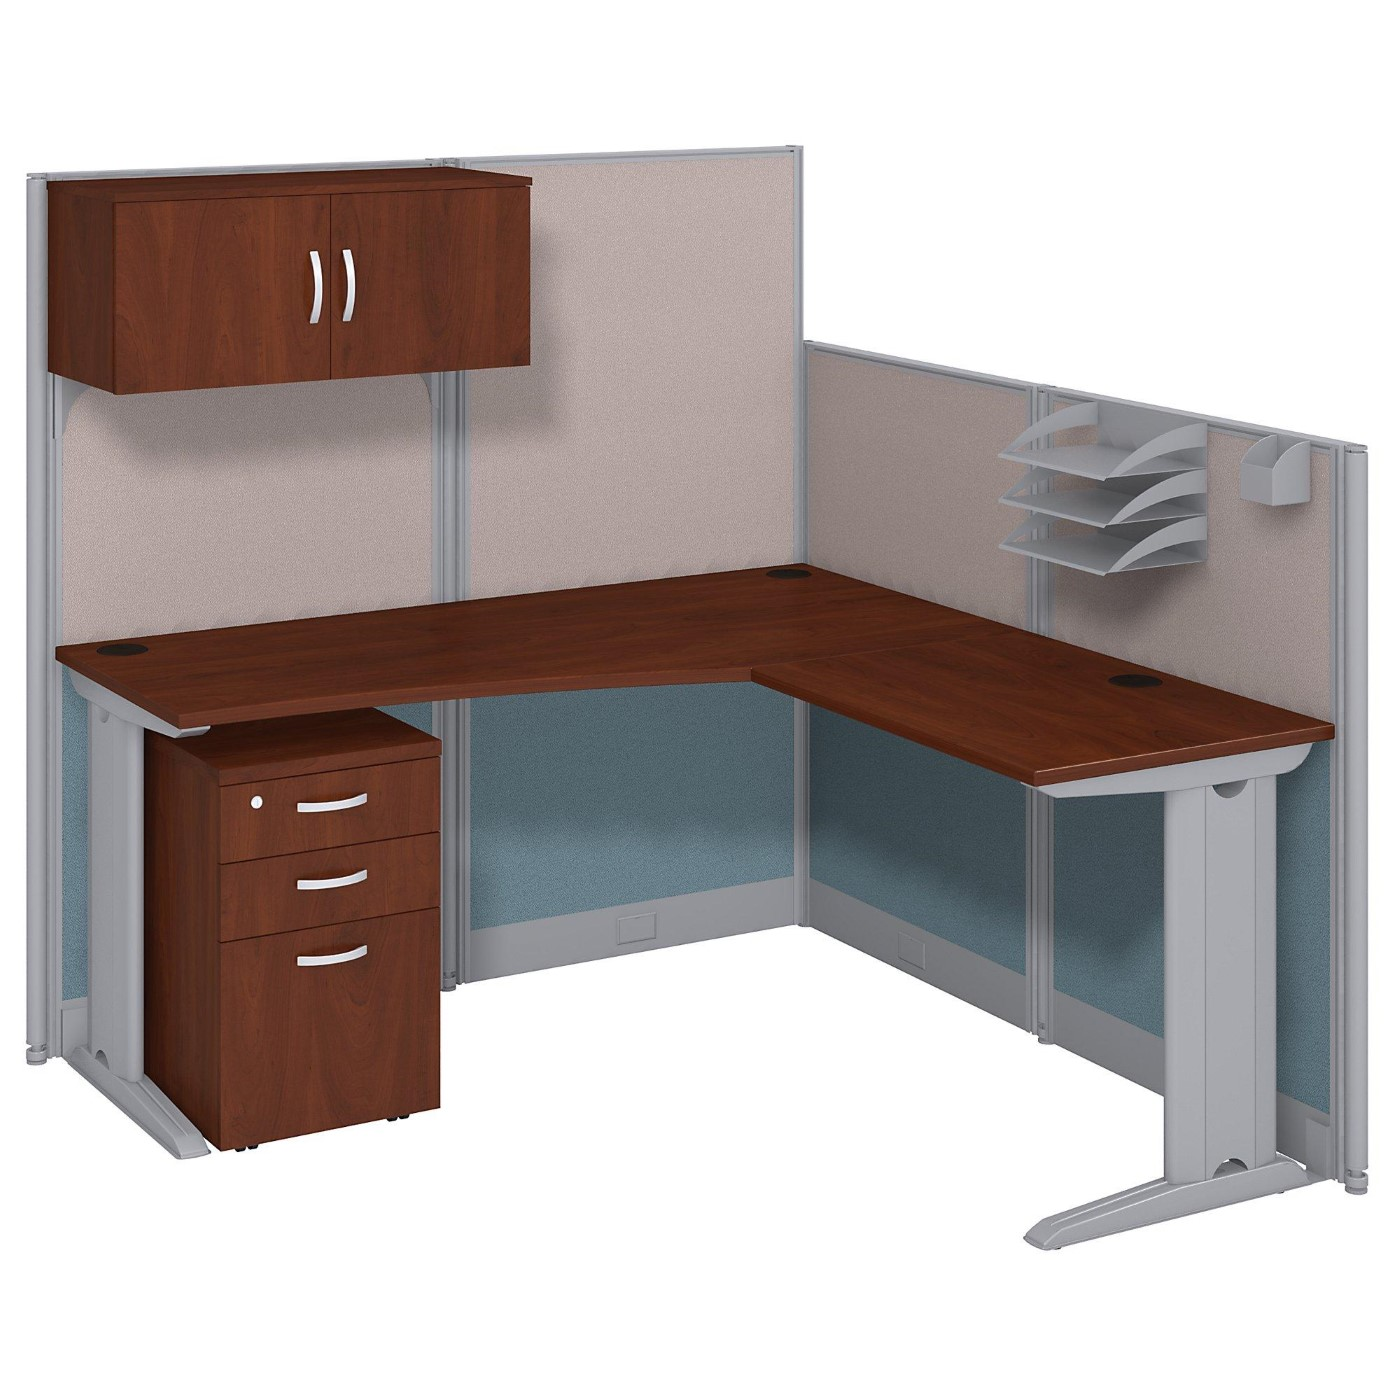 BUSH BUSINESS FURNITURE OFFICE IN AN HOUR 65W X 65D L SHAPED CUBICLE WORKSTATION WITH STORAGE. FREE SHIPPING.